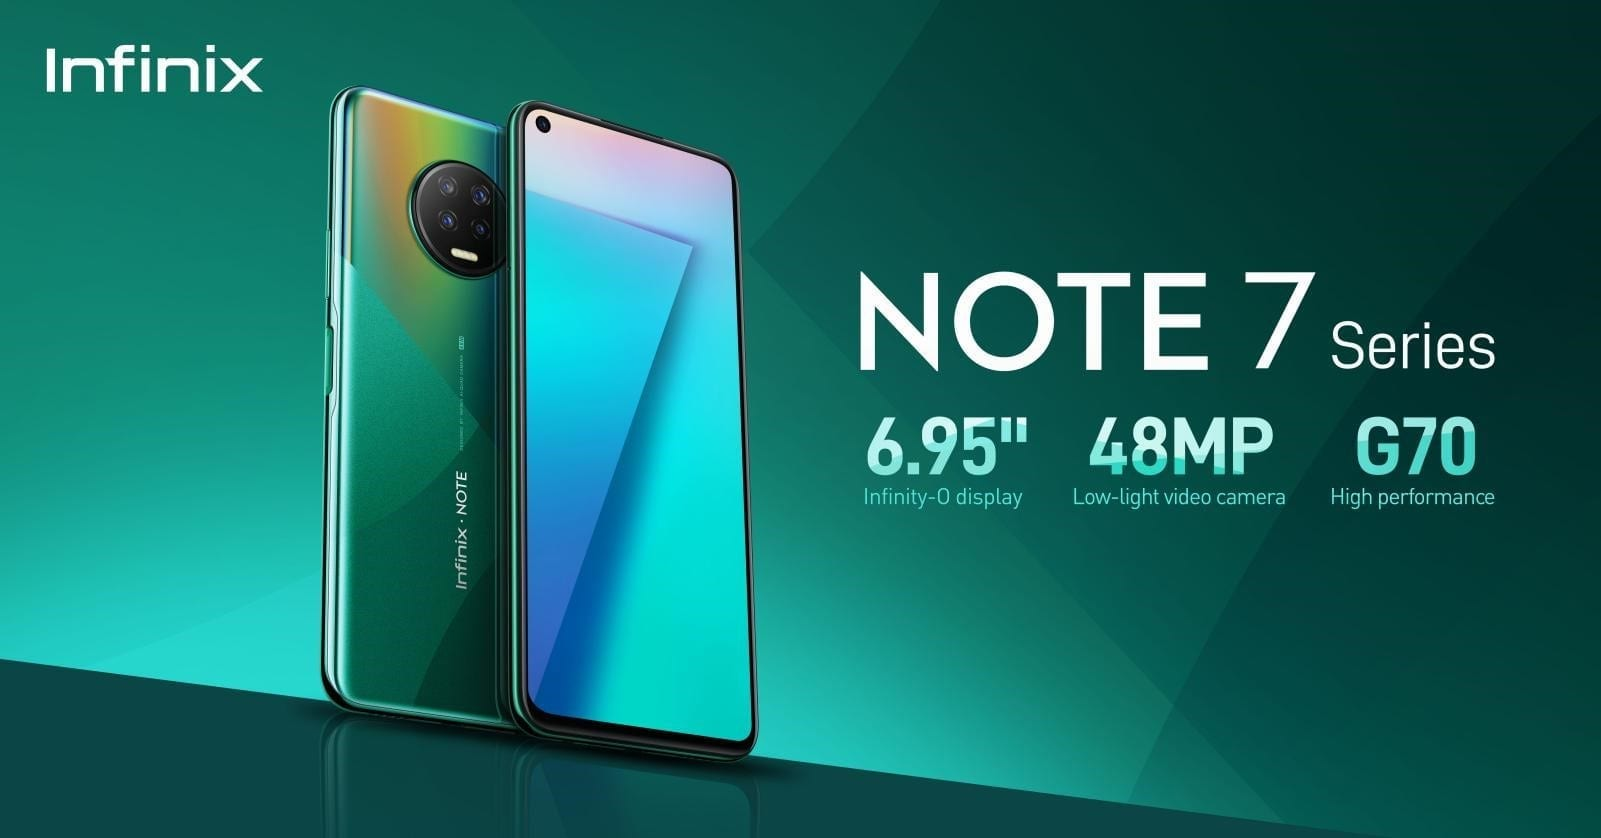 Infinix Note 7 launched